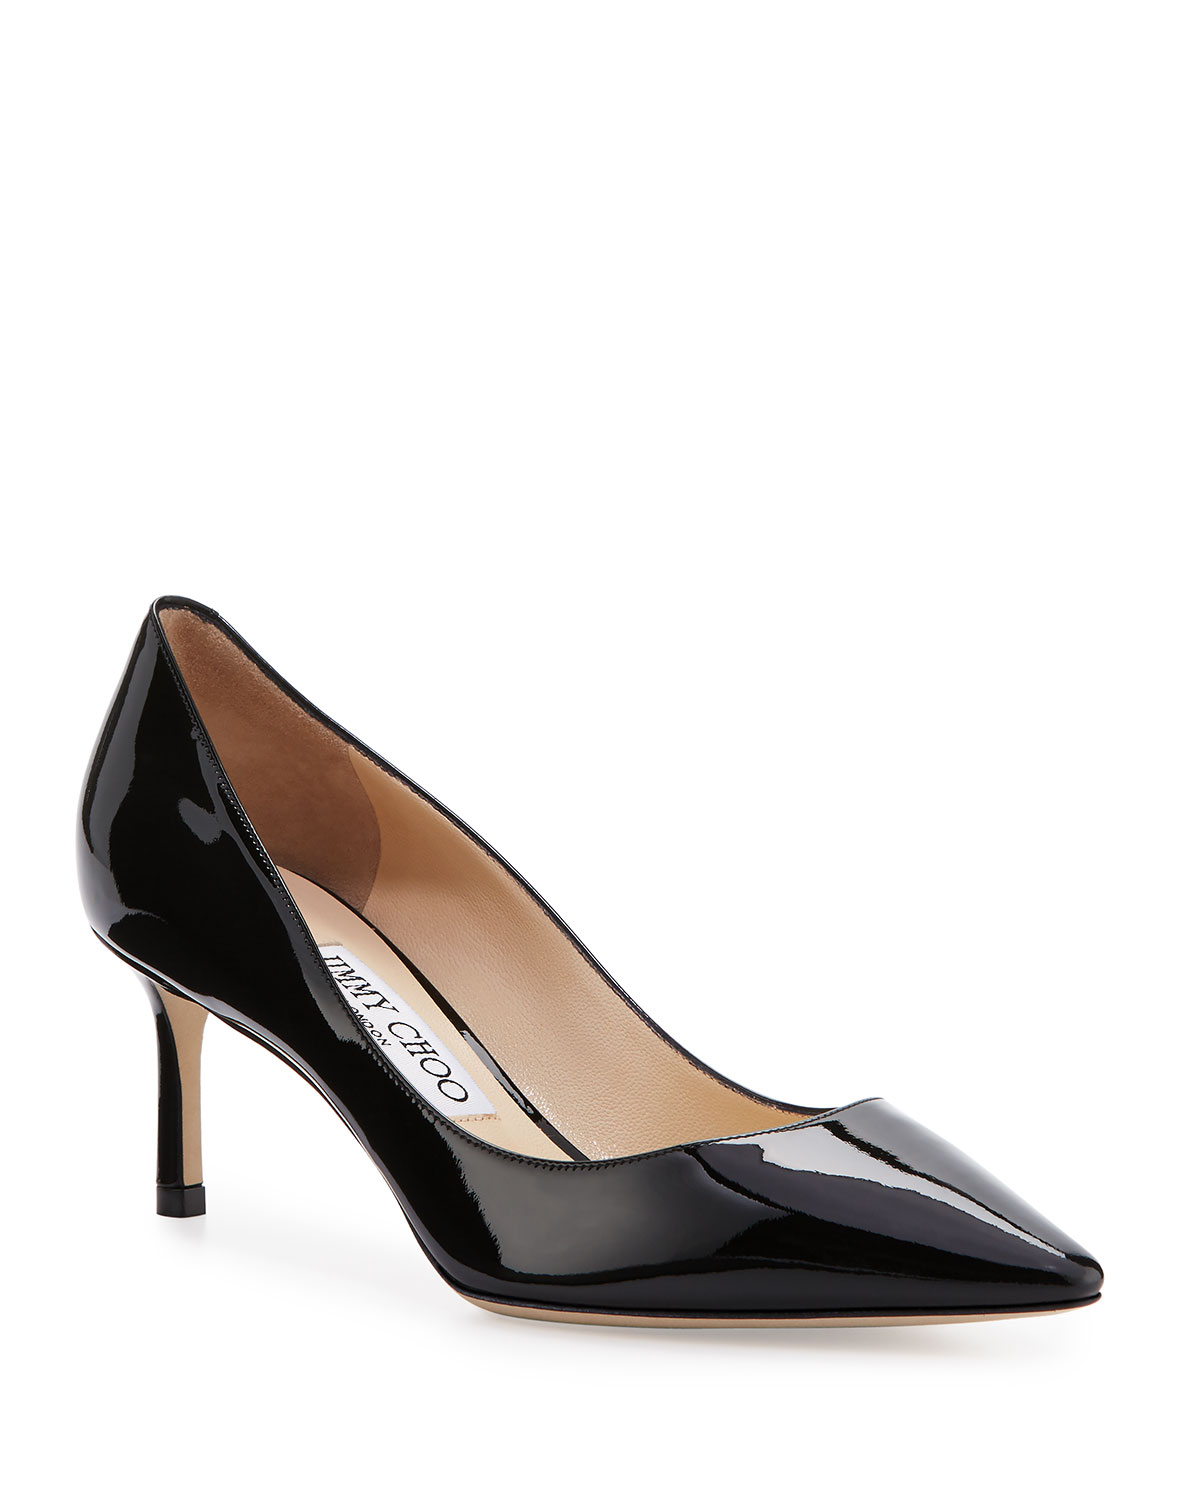 ccae0b51f2a06 Jimmy Choo Romy 60mm Patent Pointed-Toe Pumps